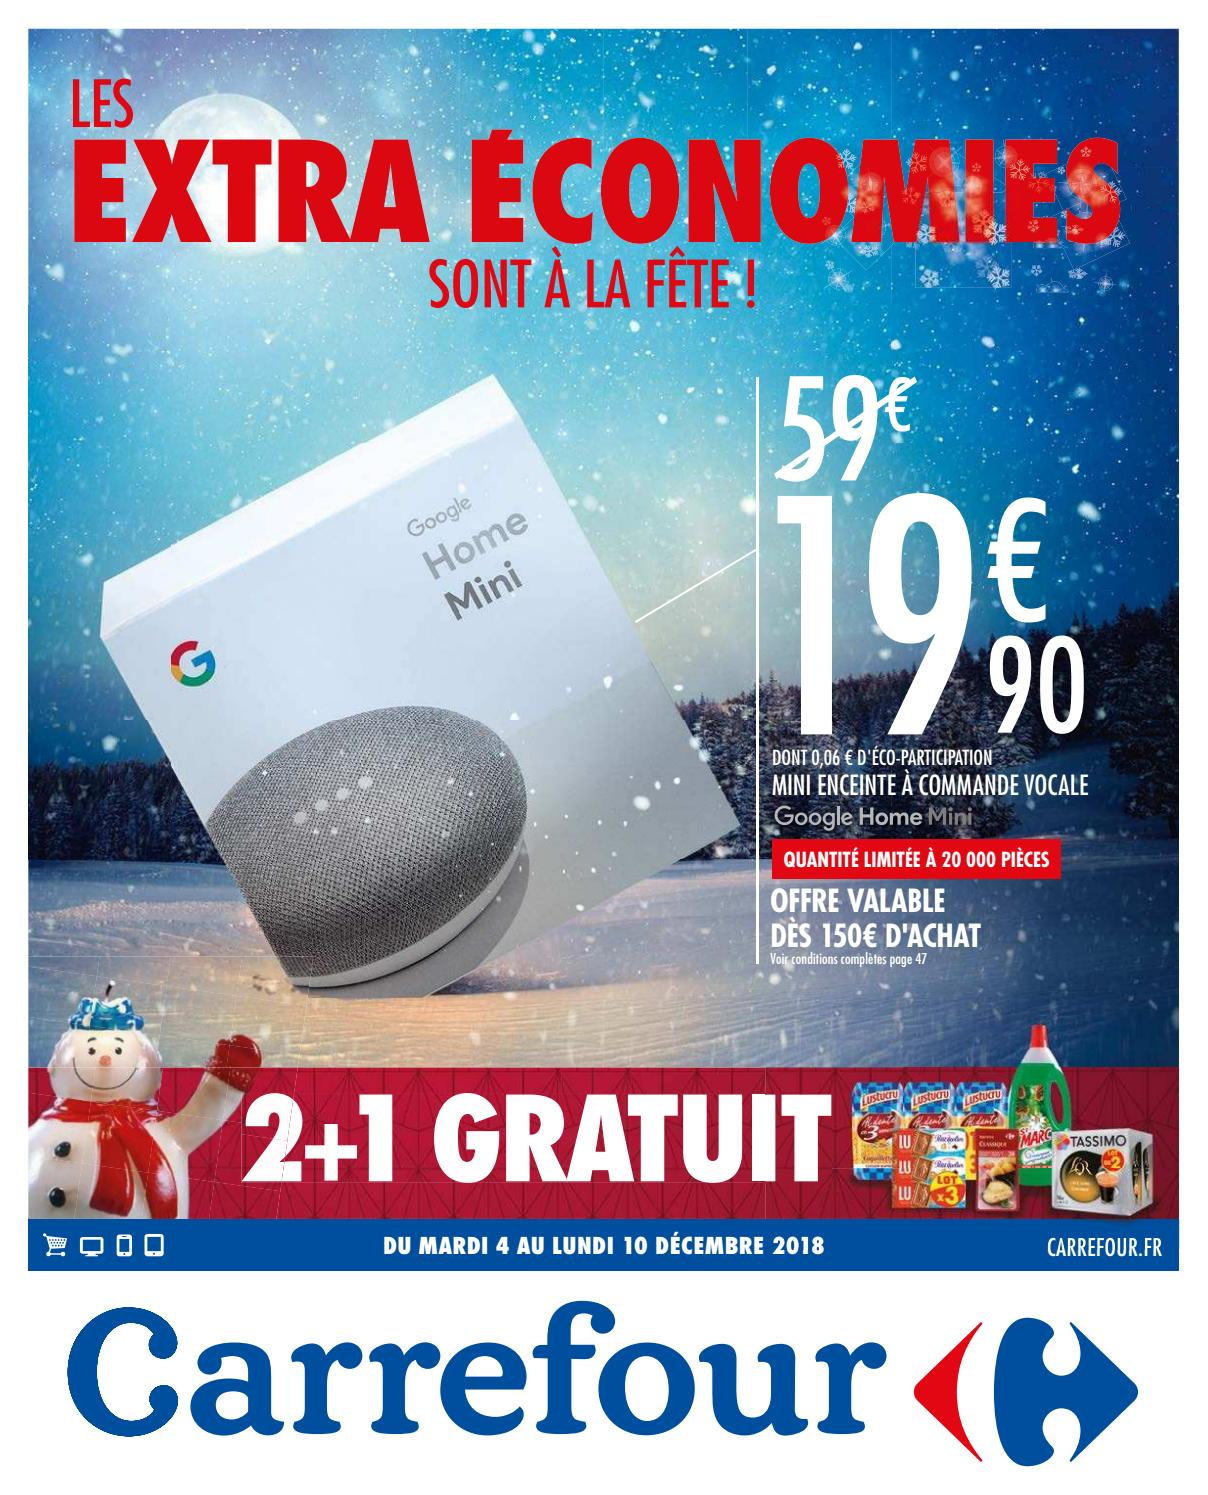 Catalogue Carrefour Du 4 Au 10 Décembre 2018 By